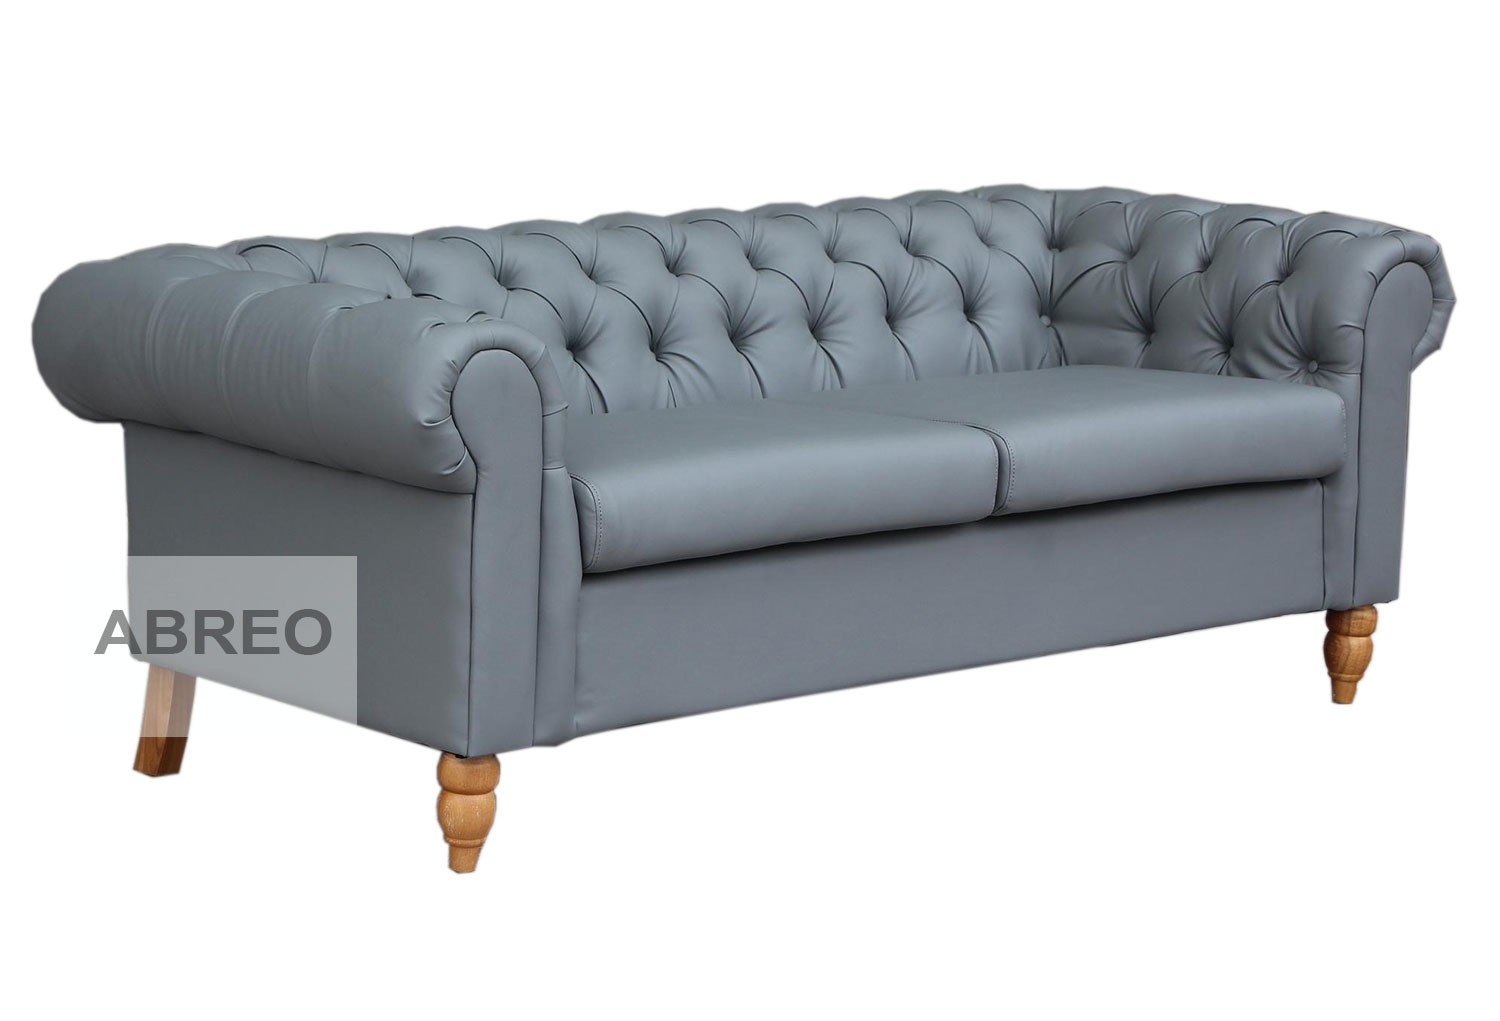 6 Seater Corner Sofa Chesterfield 3 Seat Chesterfield Grey Canterbury Chesterfield Sofas